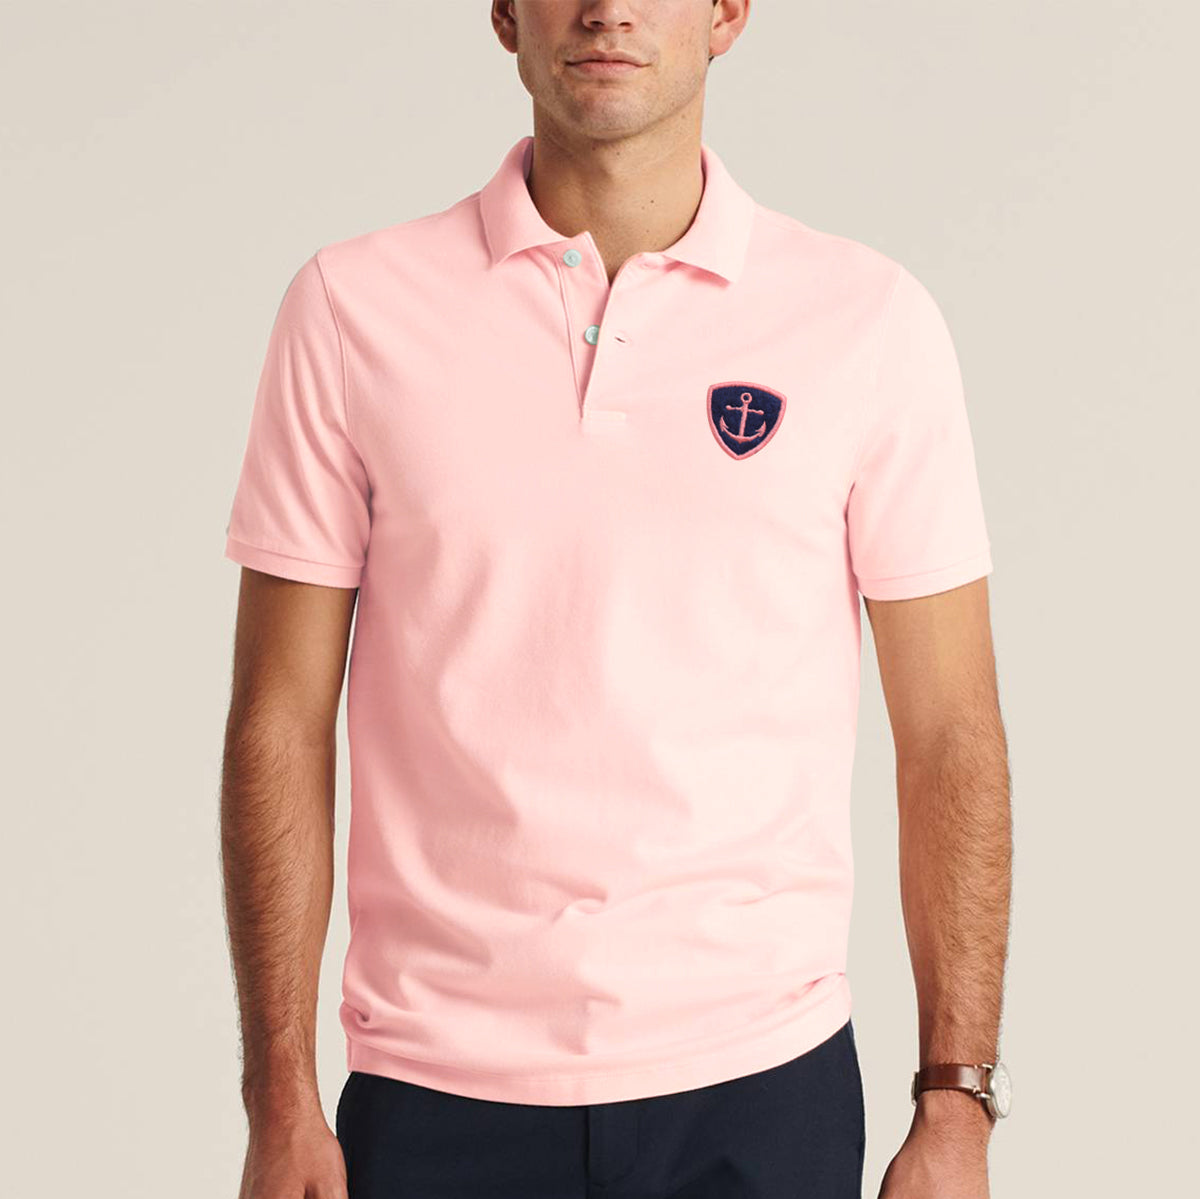 Express Stylish Summer Polo Shirt For Men-Light Peach-BE11438